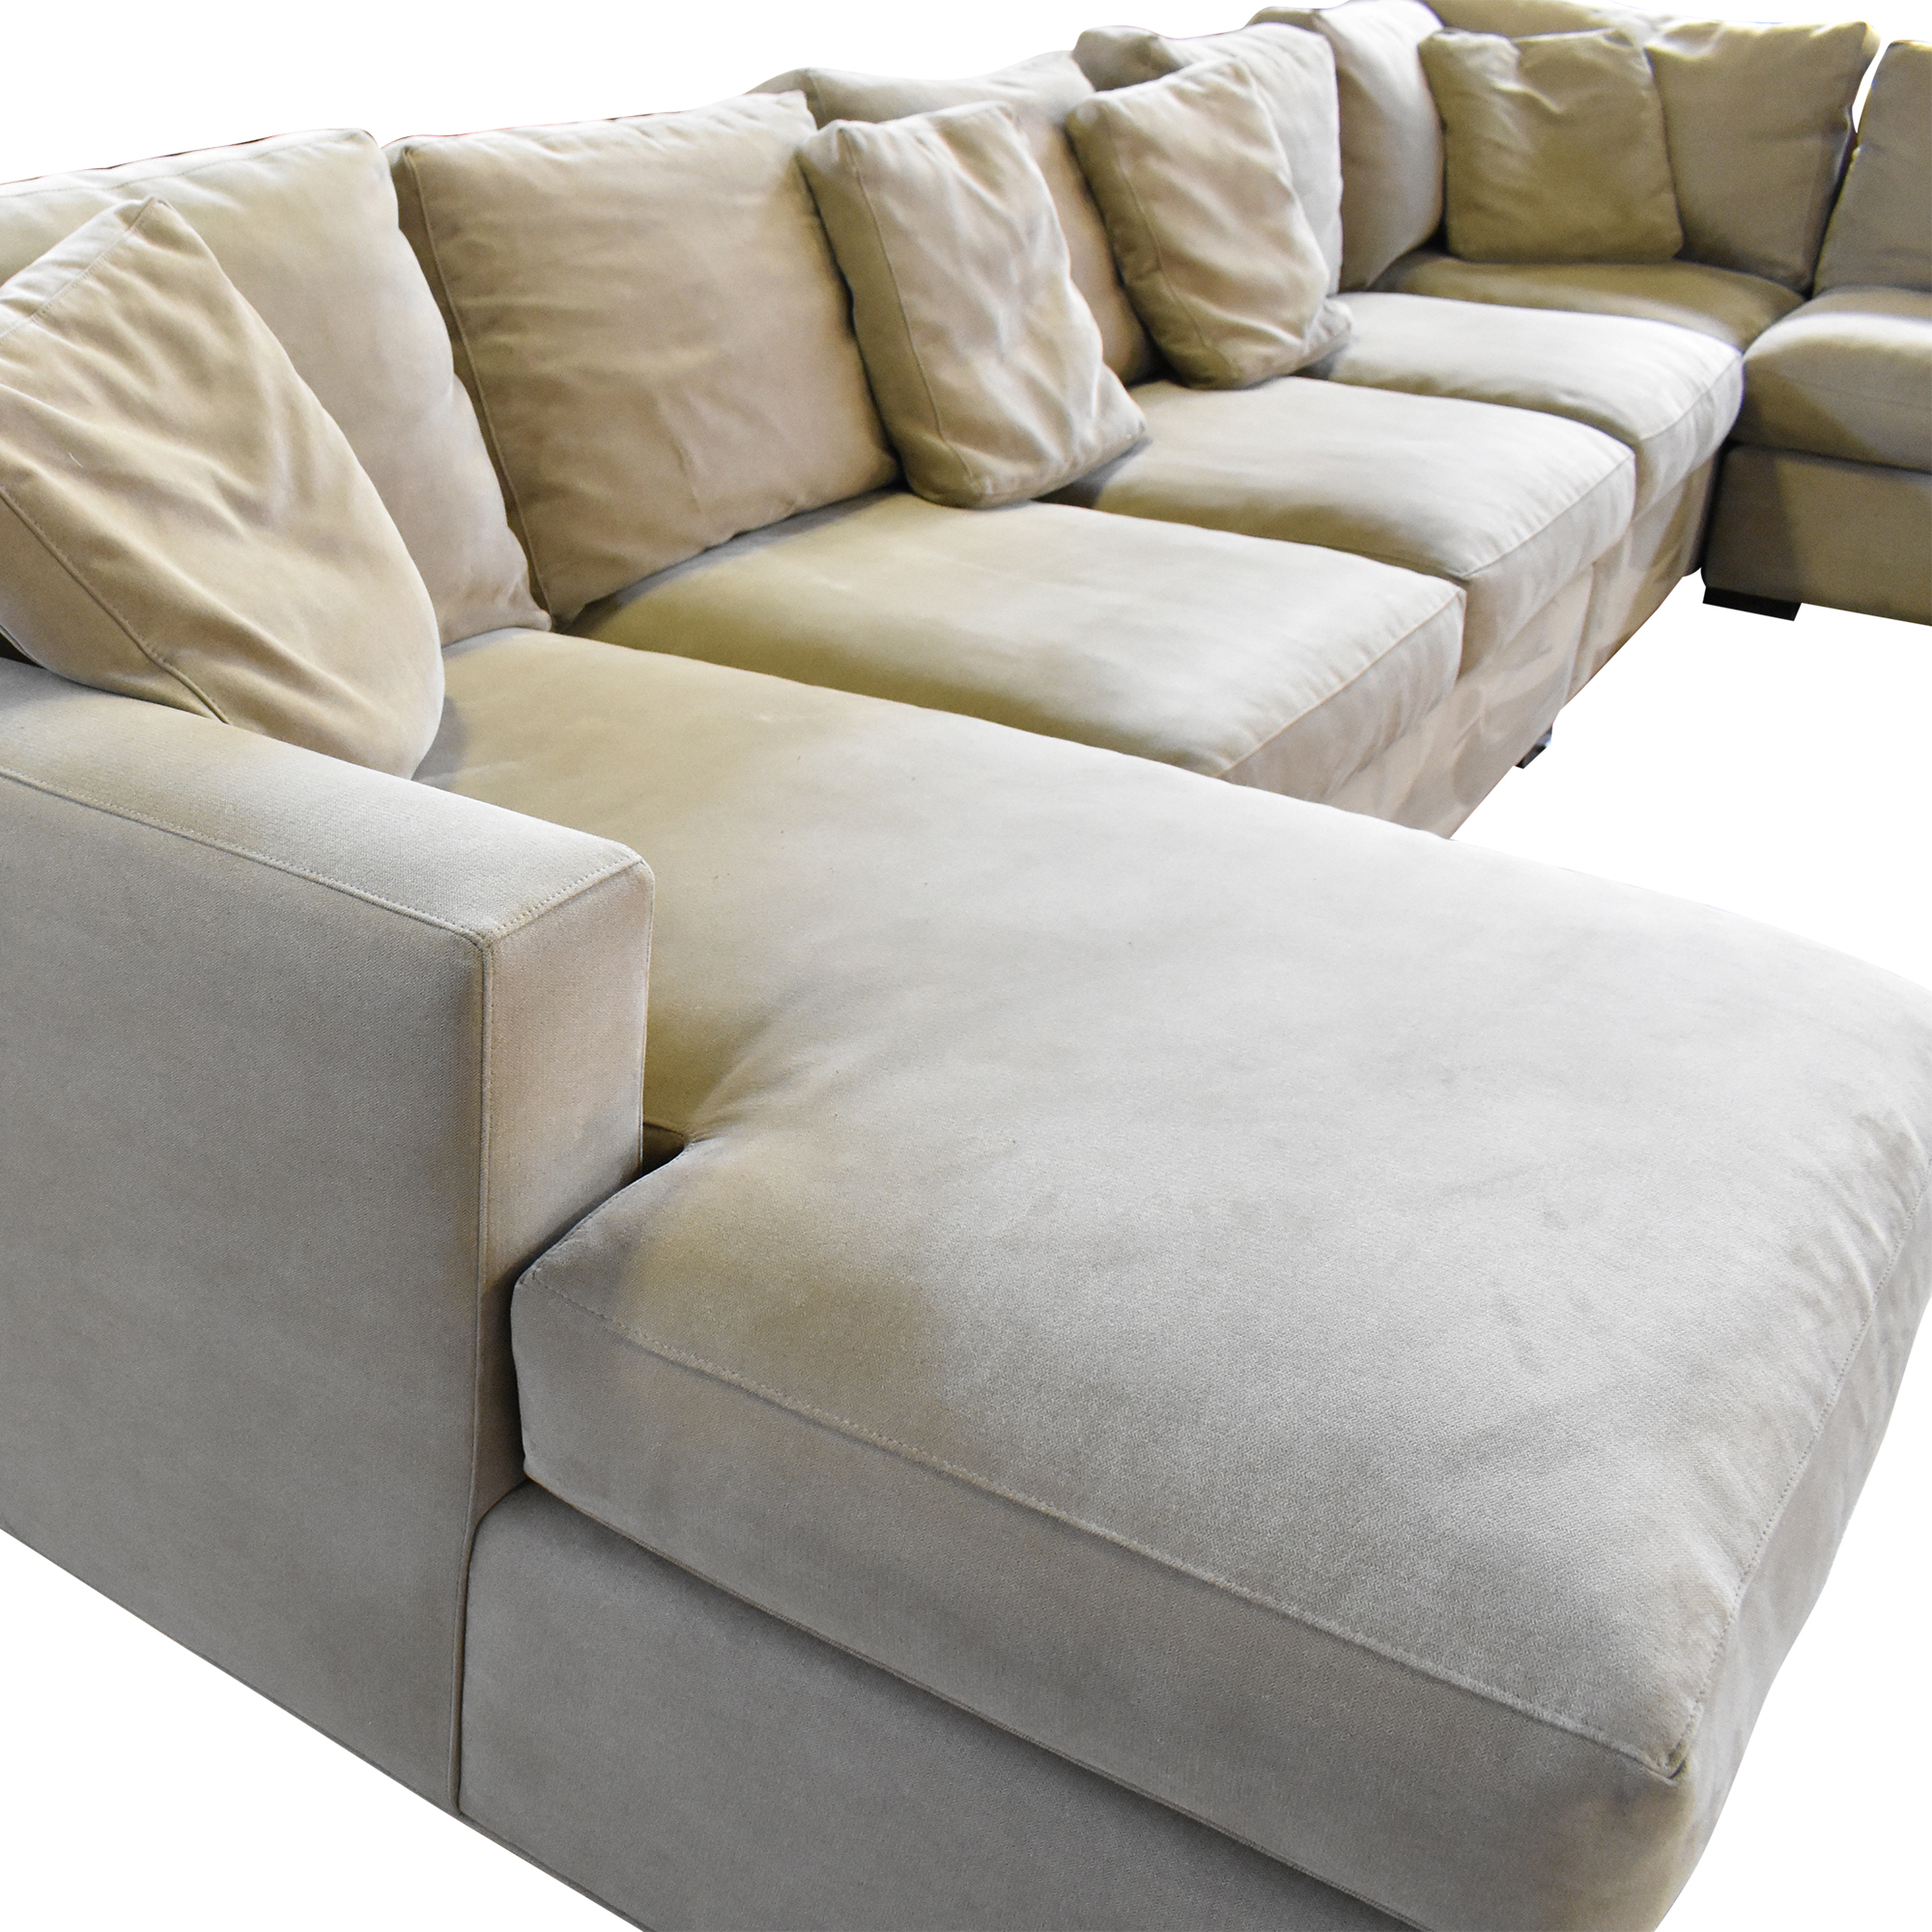 Crate & Barrel Axis Sectional Sofa with Chaise / Sofas